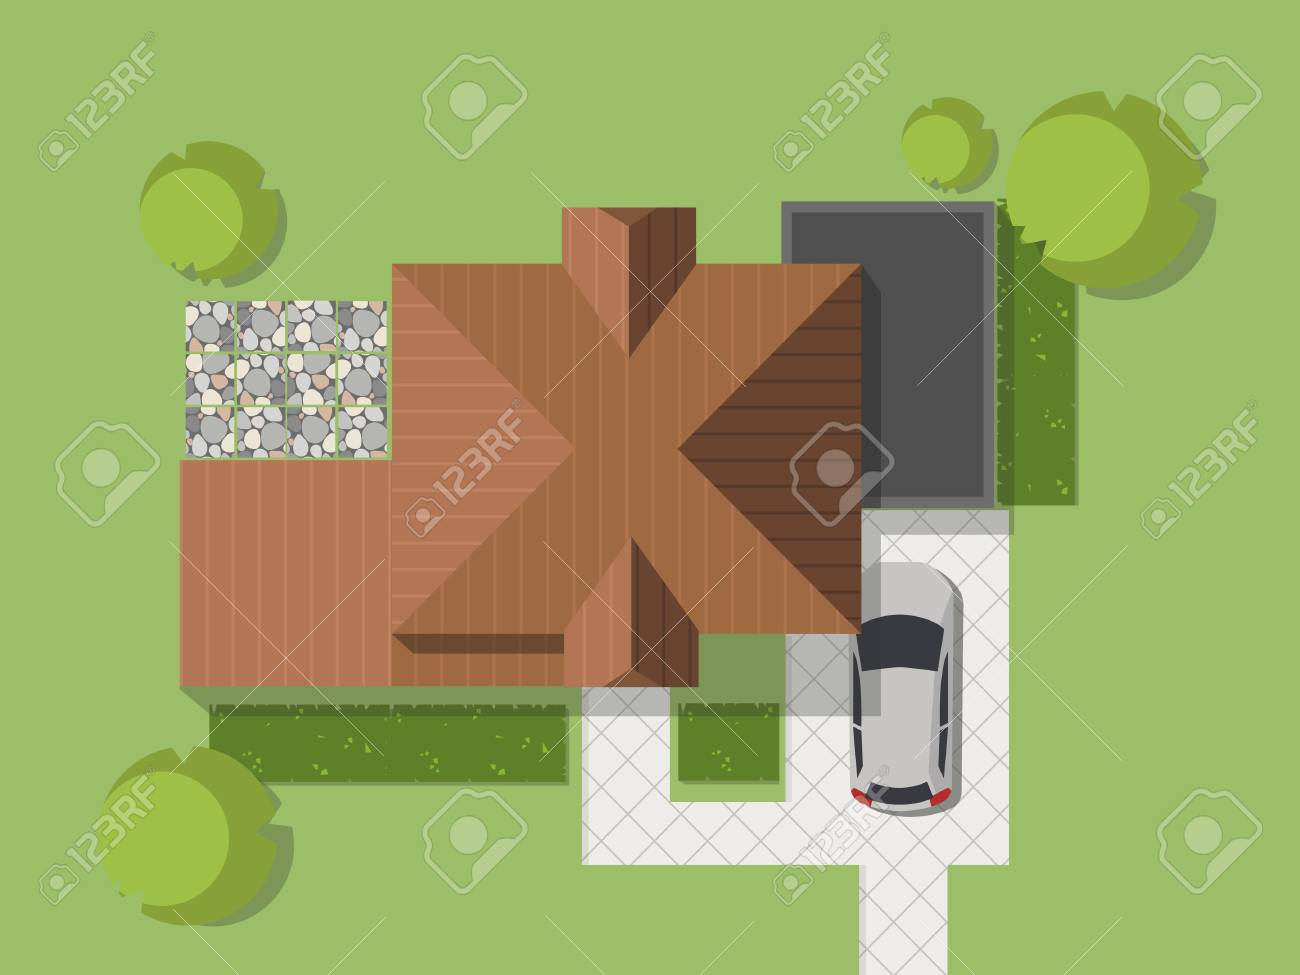 Top view of a country with a house, courtyard, lawn and garage. Top view of a house. Vector illustration. - 81705522